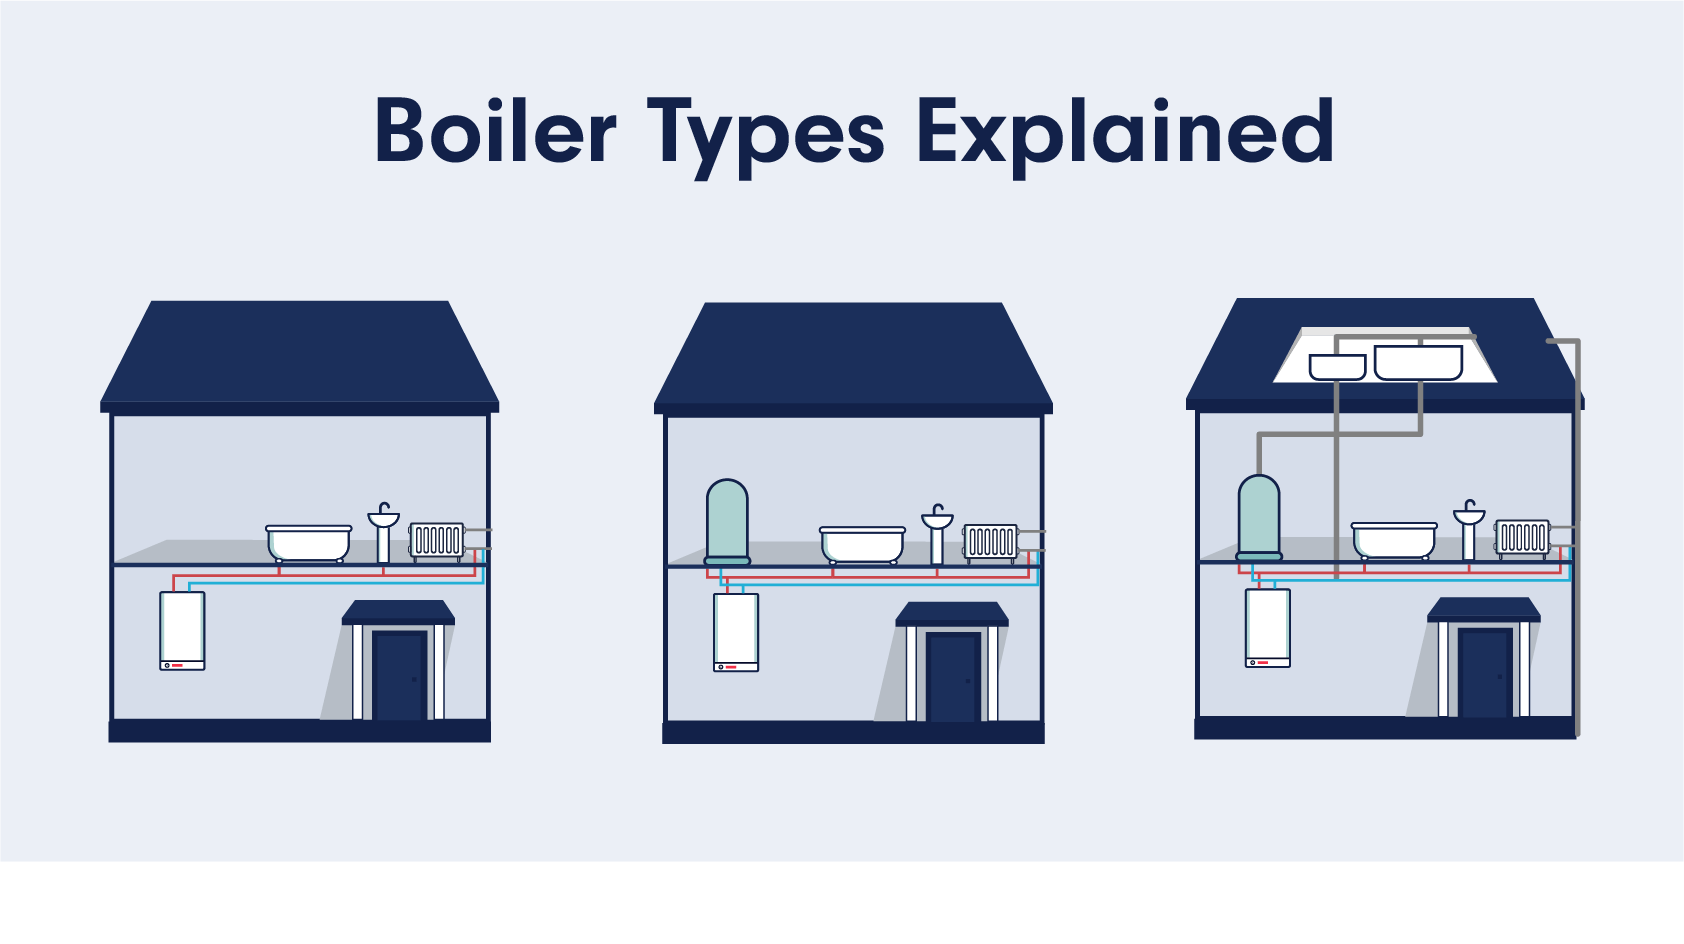 Different Types Of Boiler Systems Explained